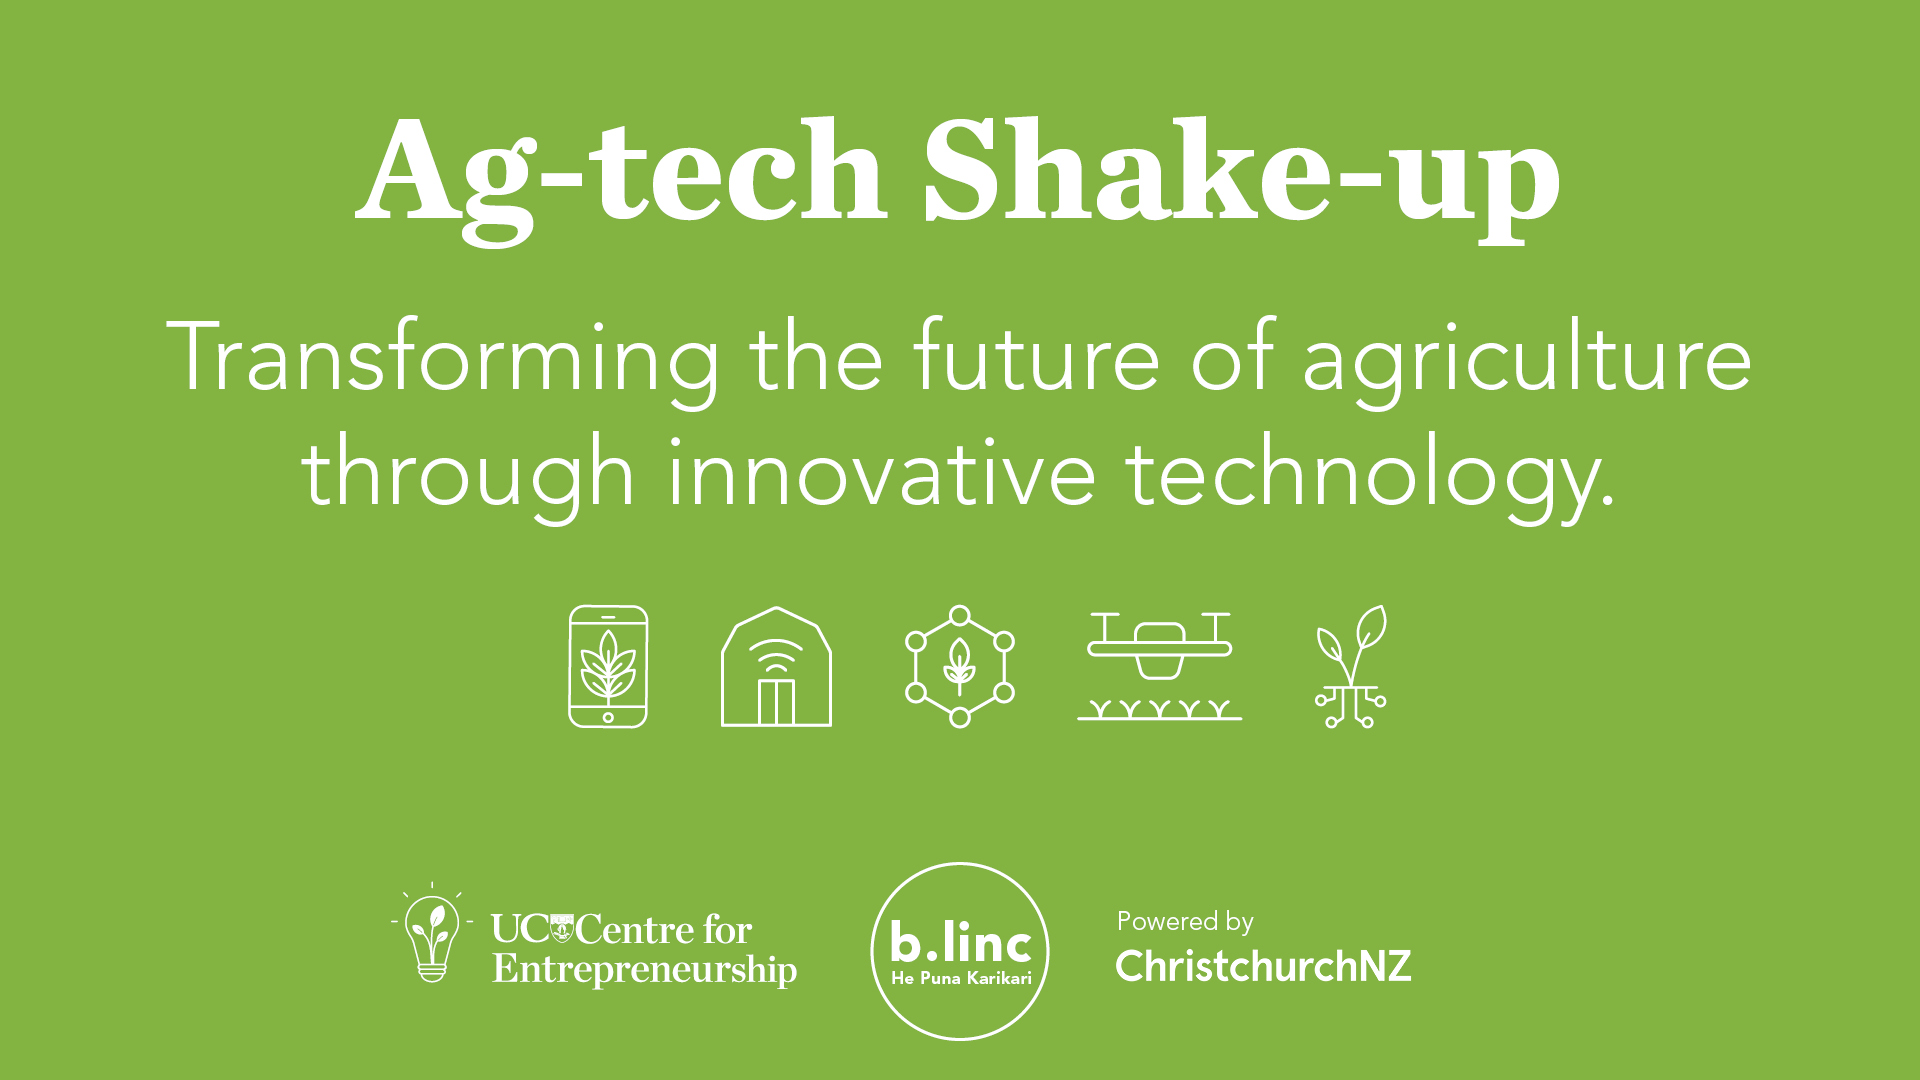 Ag-tech Shake-up